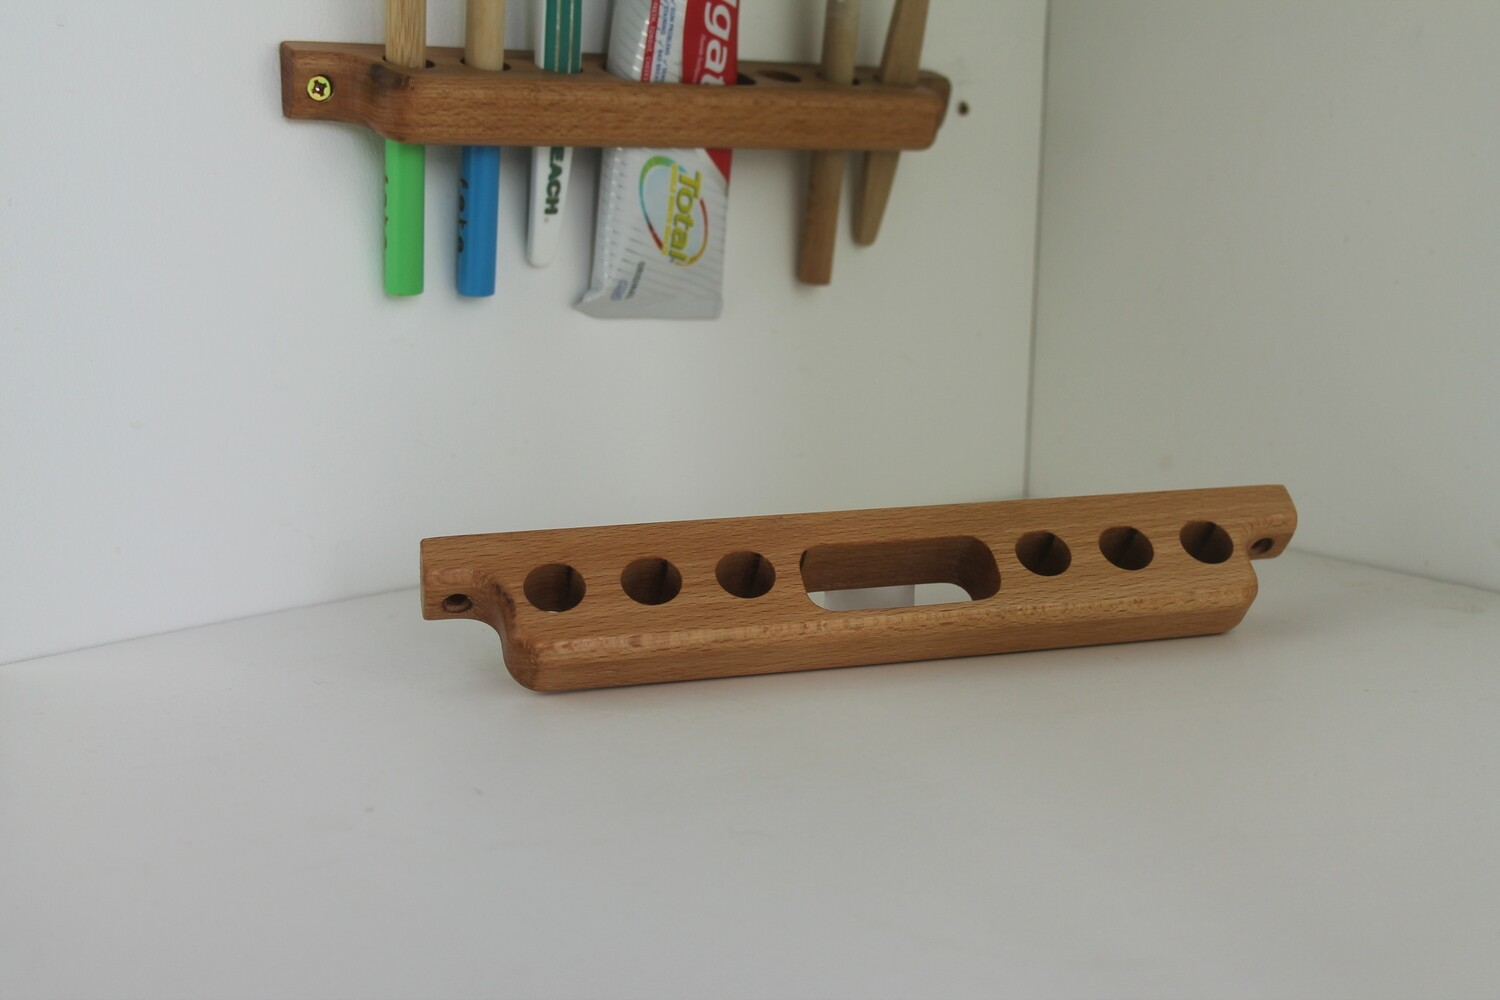 Wooden Toothbrush and Toothpaste Holder For 6 Toothbrushes, Beech Wood